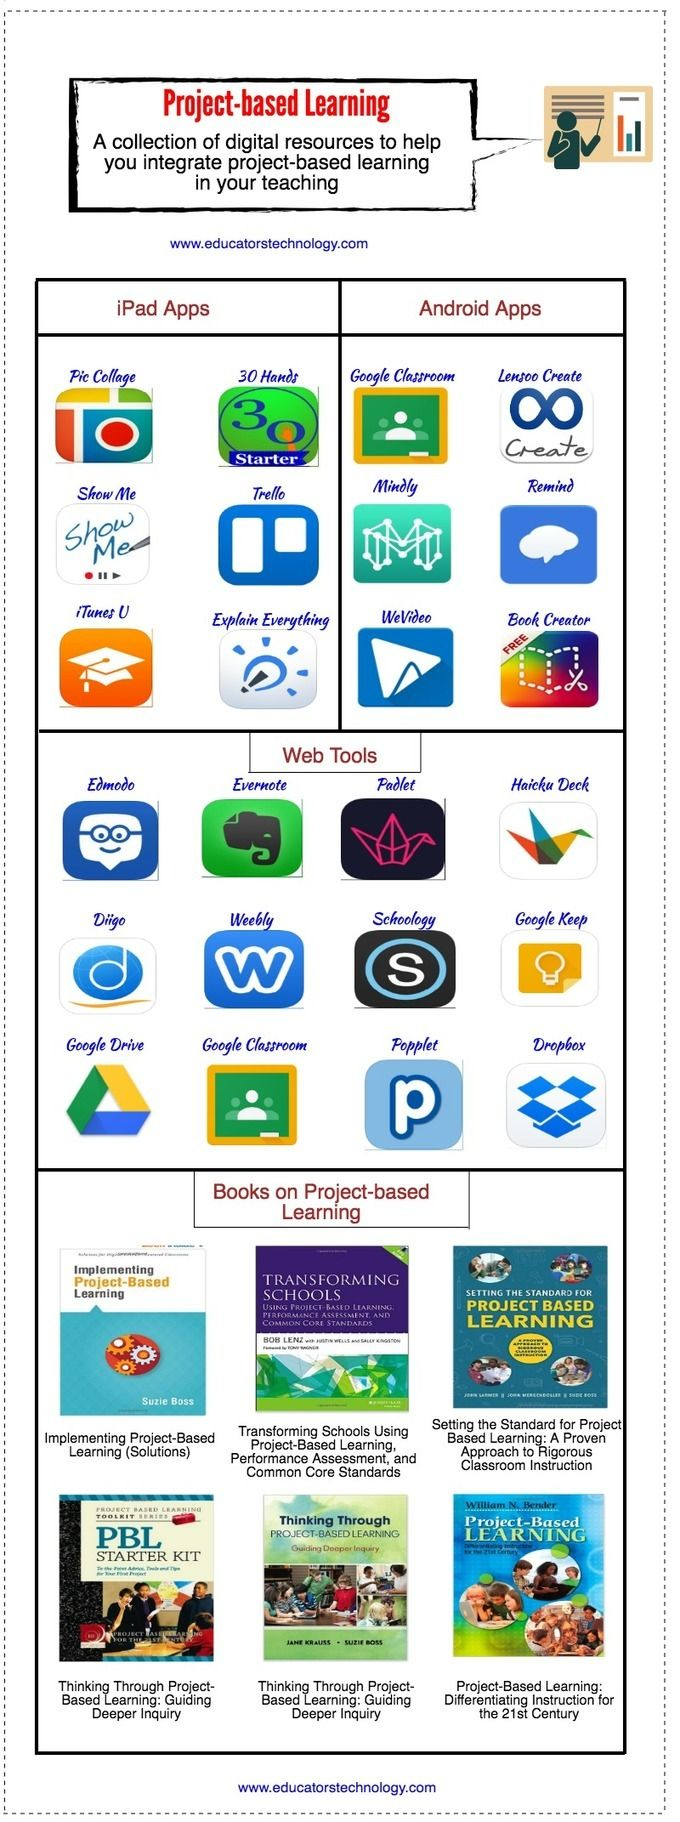 A+New+Infographic+on+Project-based+Learning+for+Teachers+~+Educational+Technology+and+Mobile+Learning